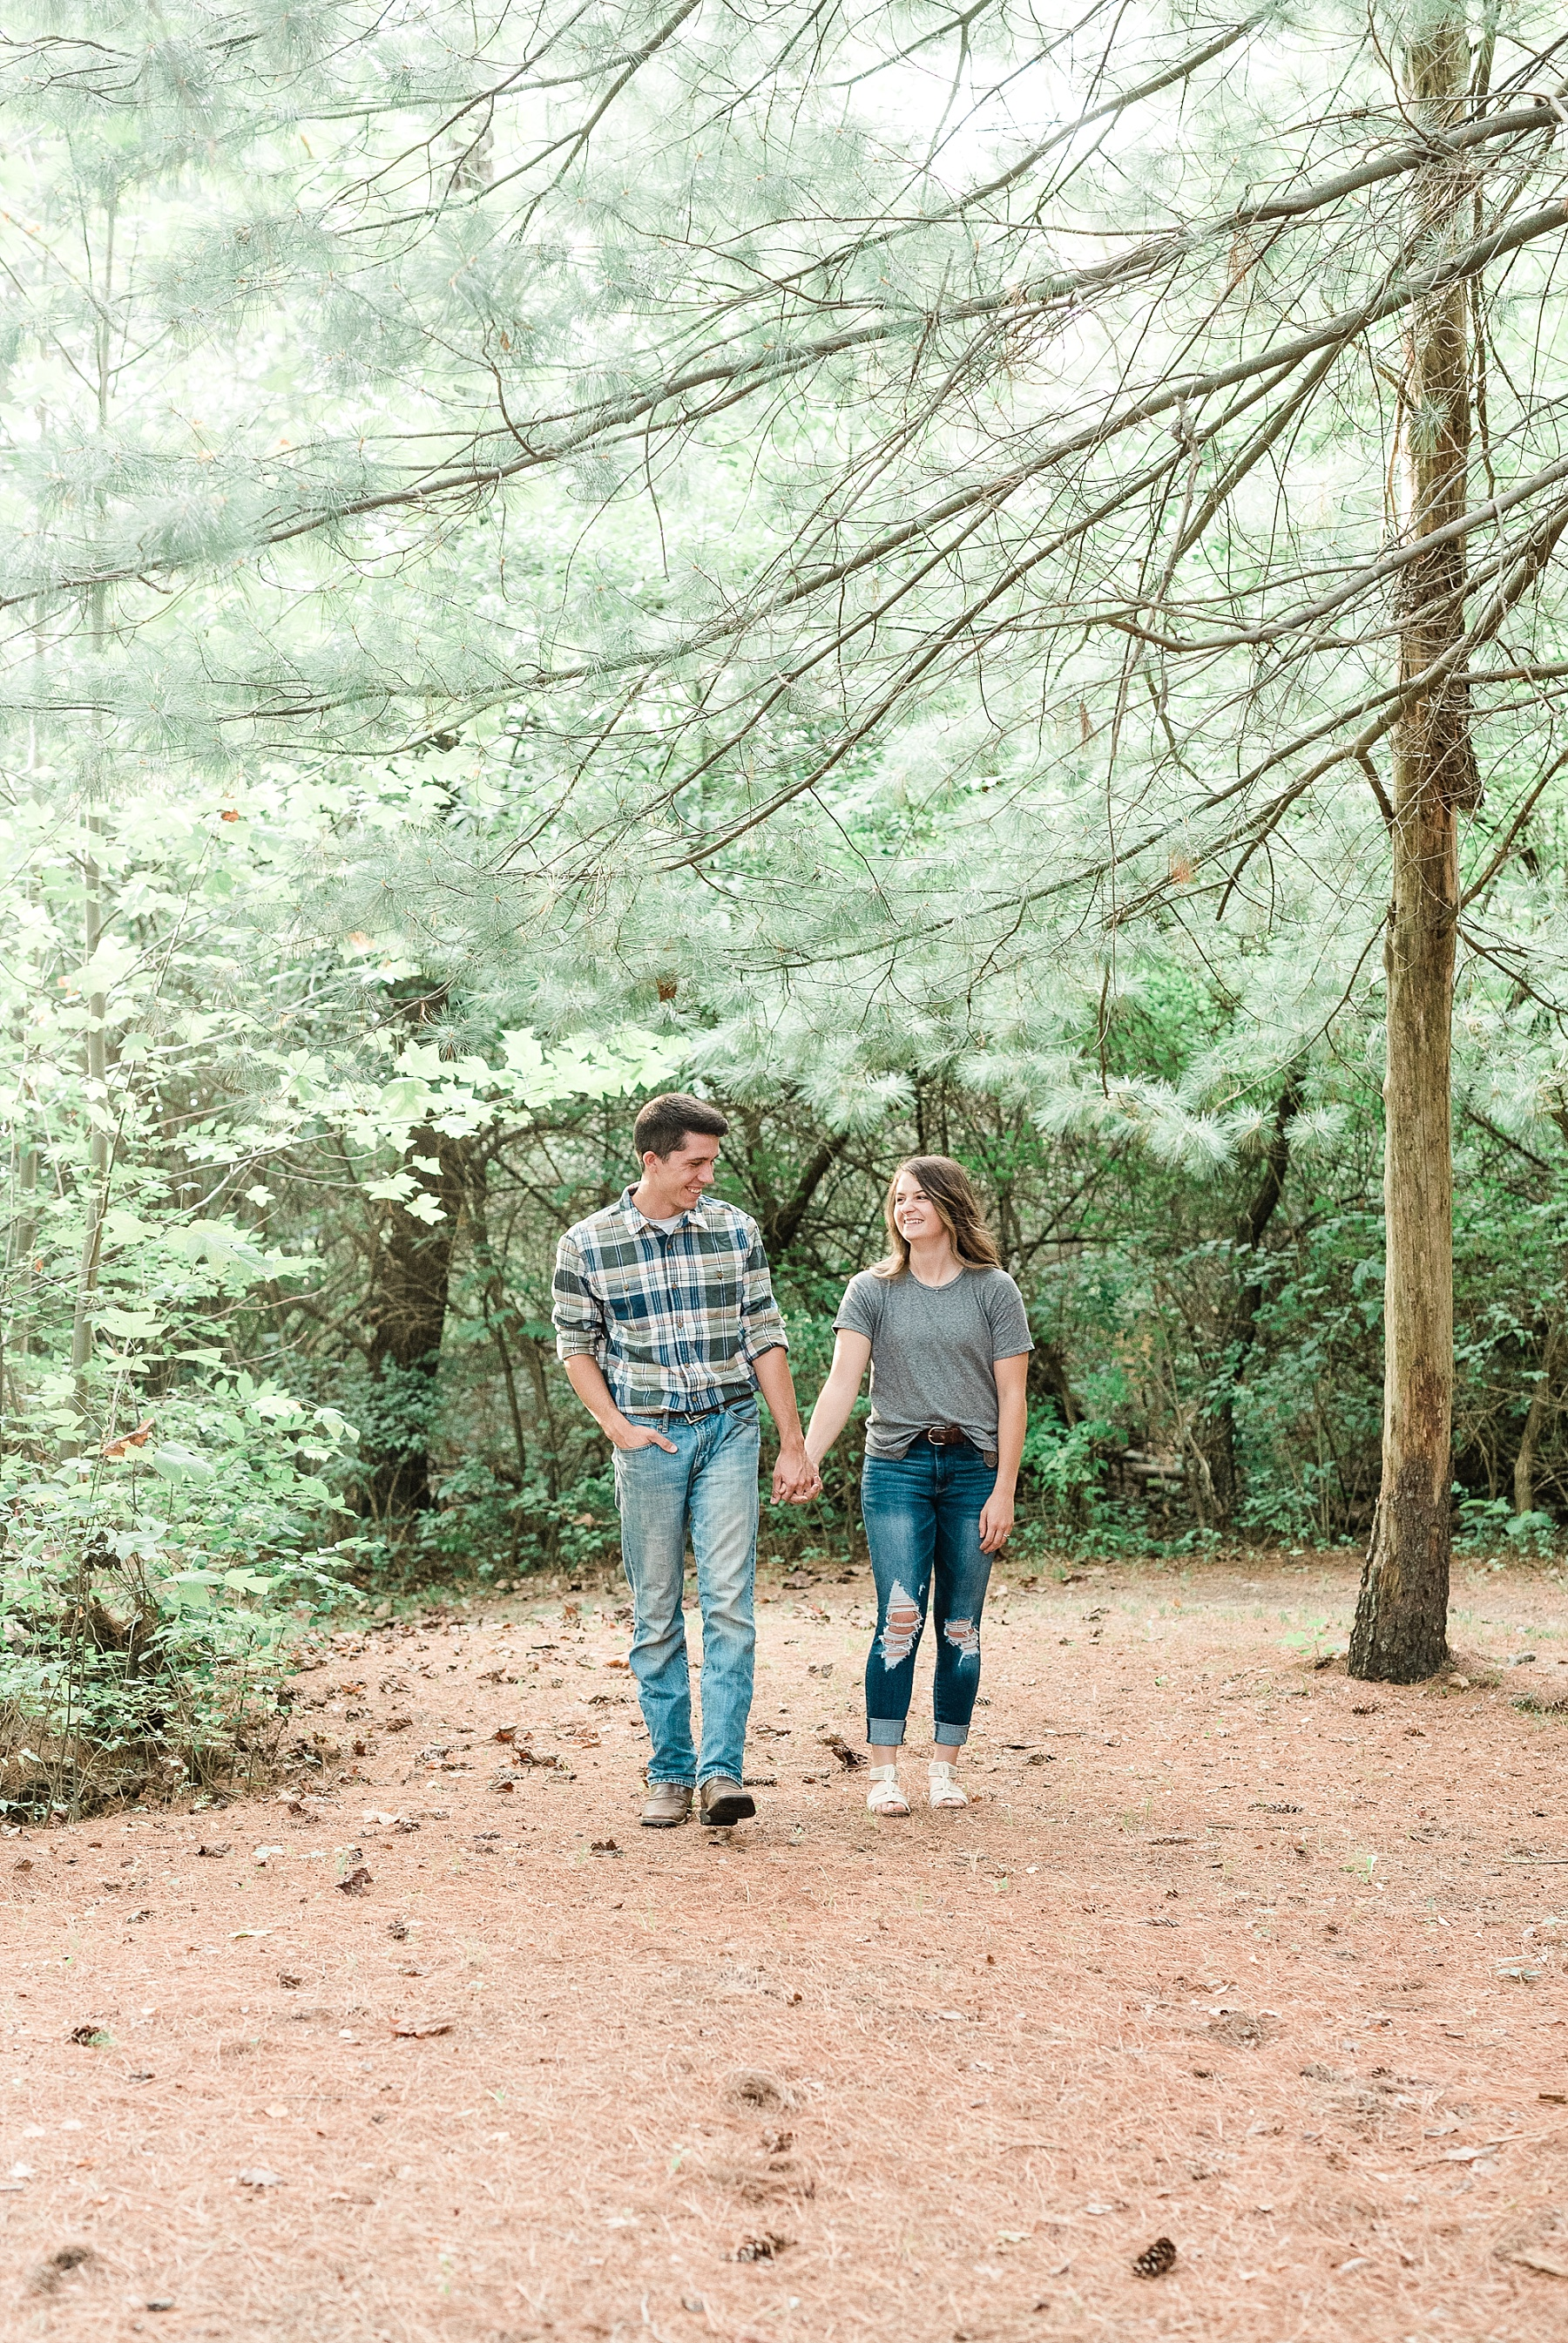 Wanderlust Engagement Session in the Pines with Sunset Canoe Ride in Blue Green Lake in Mid Missouri by Kelsi Kliethermes Photography_0006.jpg